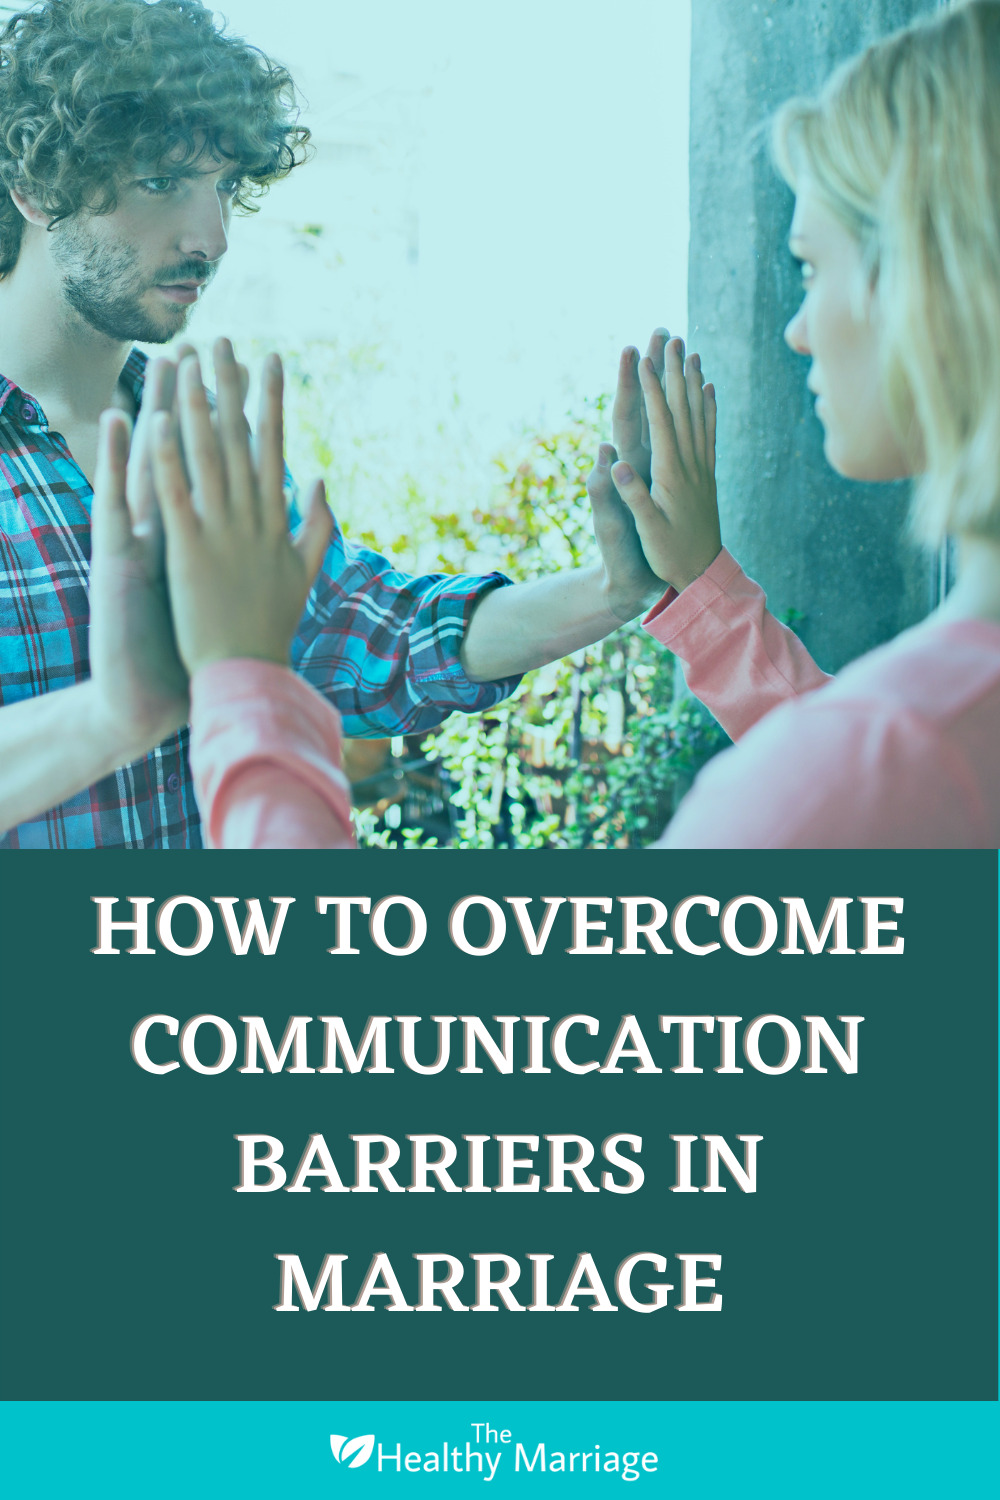 How To Overcome Communication Barriers In Marriage Pinterest Pin